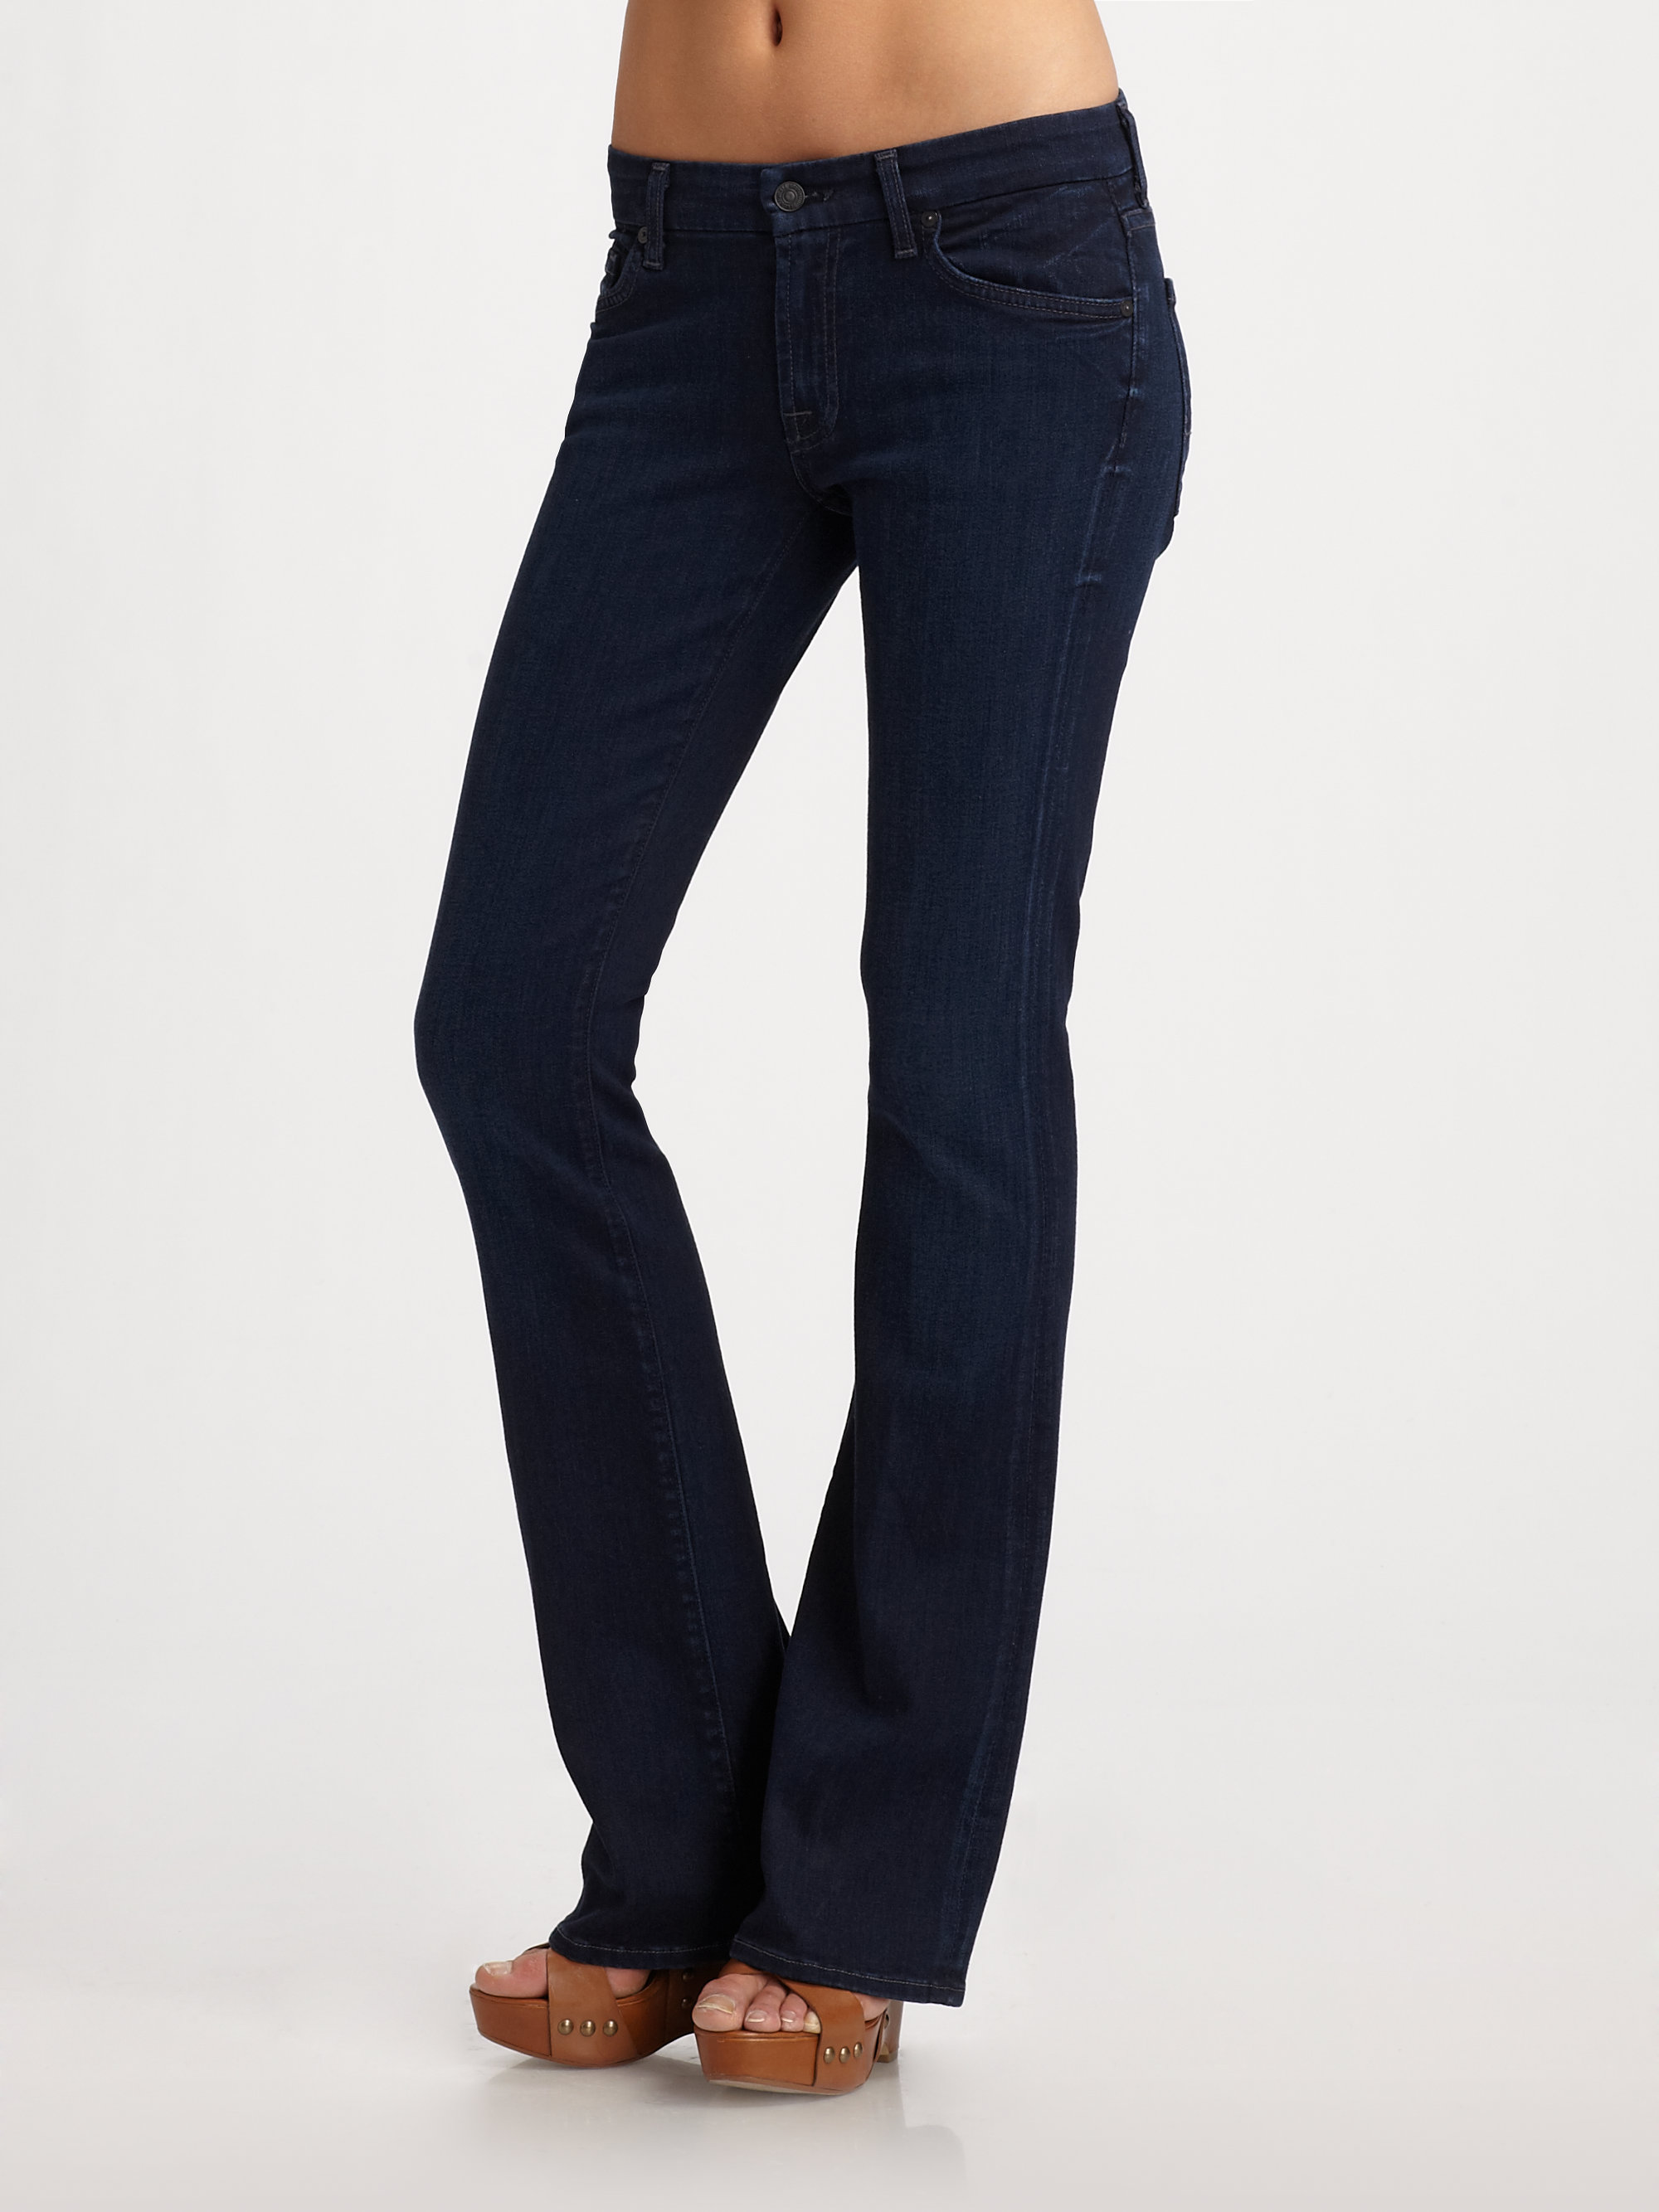 7 For All Mankind Mens Jeans